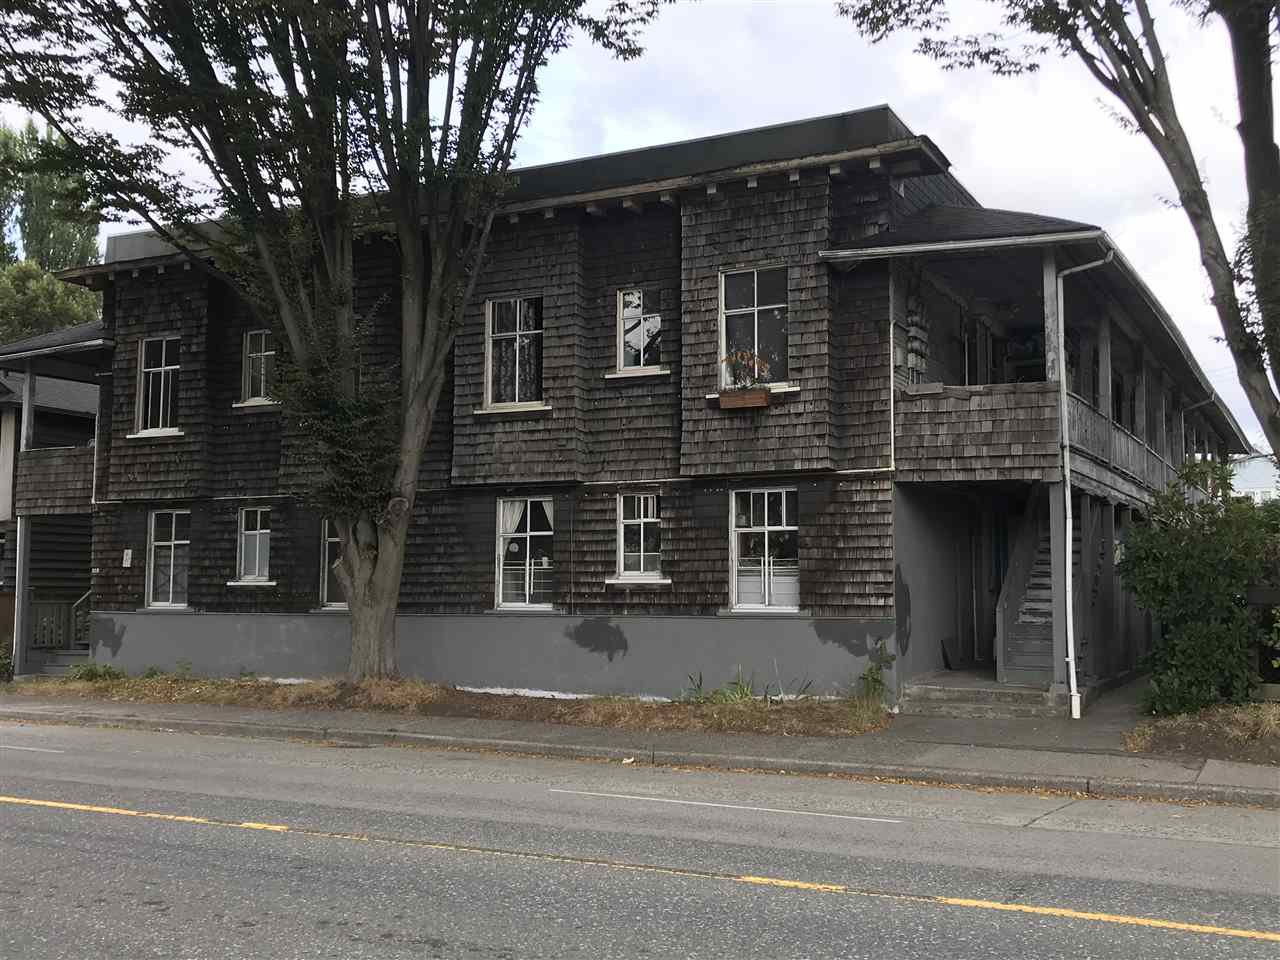 Main Photo: 819 PRIOR Street in Vancouver: Strathcona Multi-Family Commercial for sale (Vancouver East)  : MLS®# C8034018